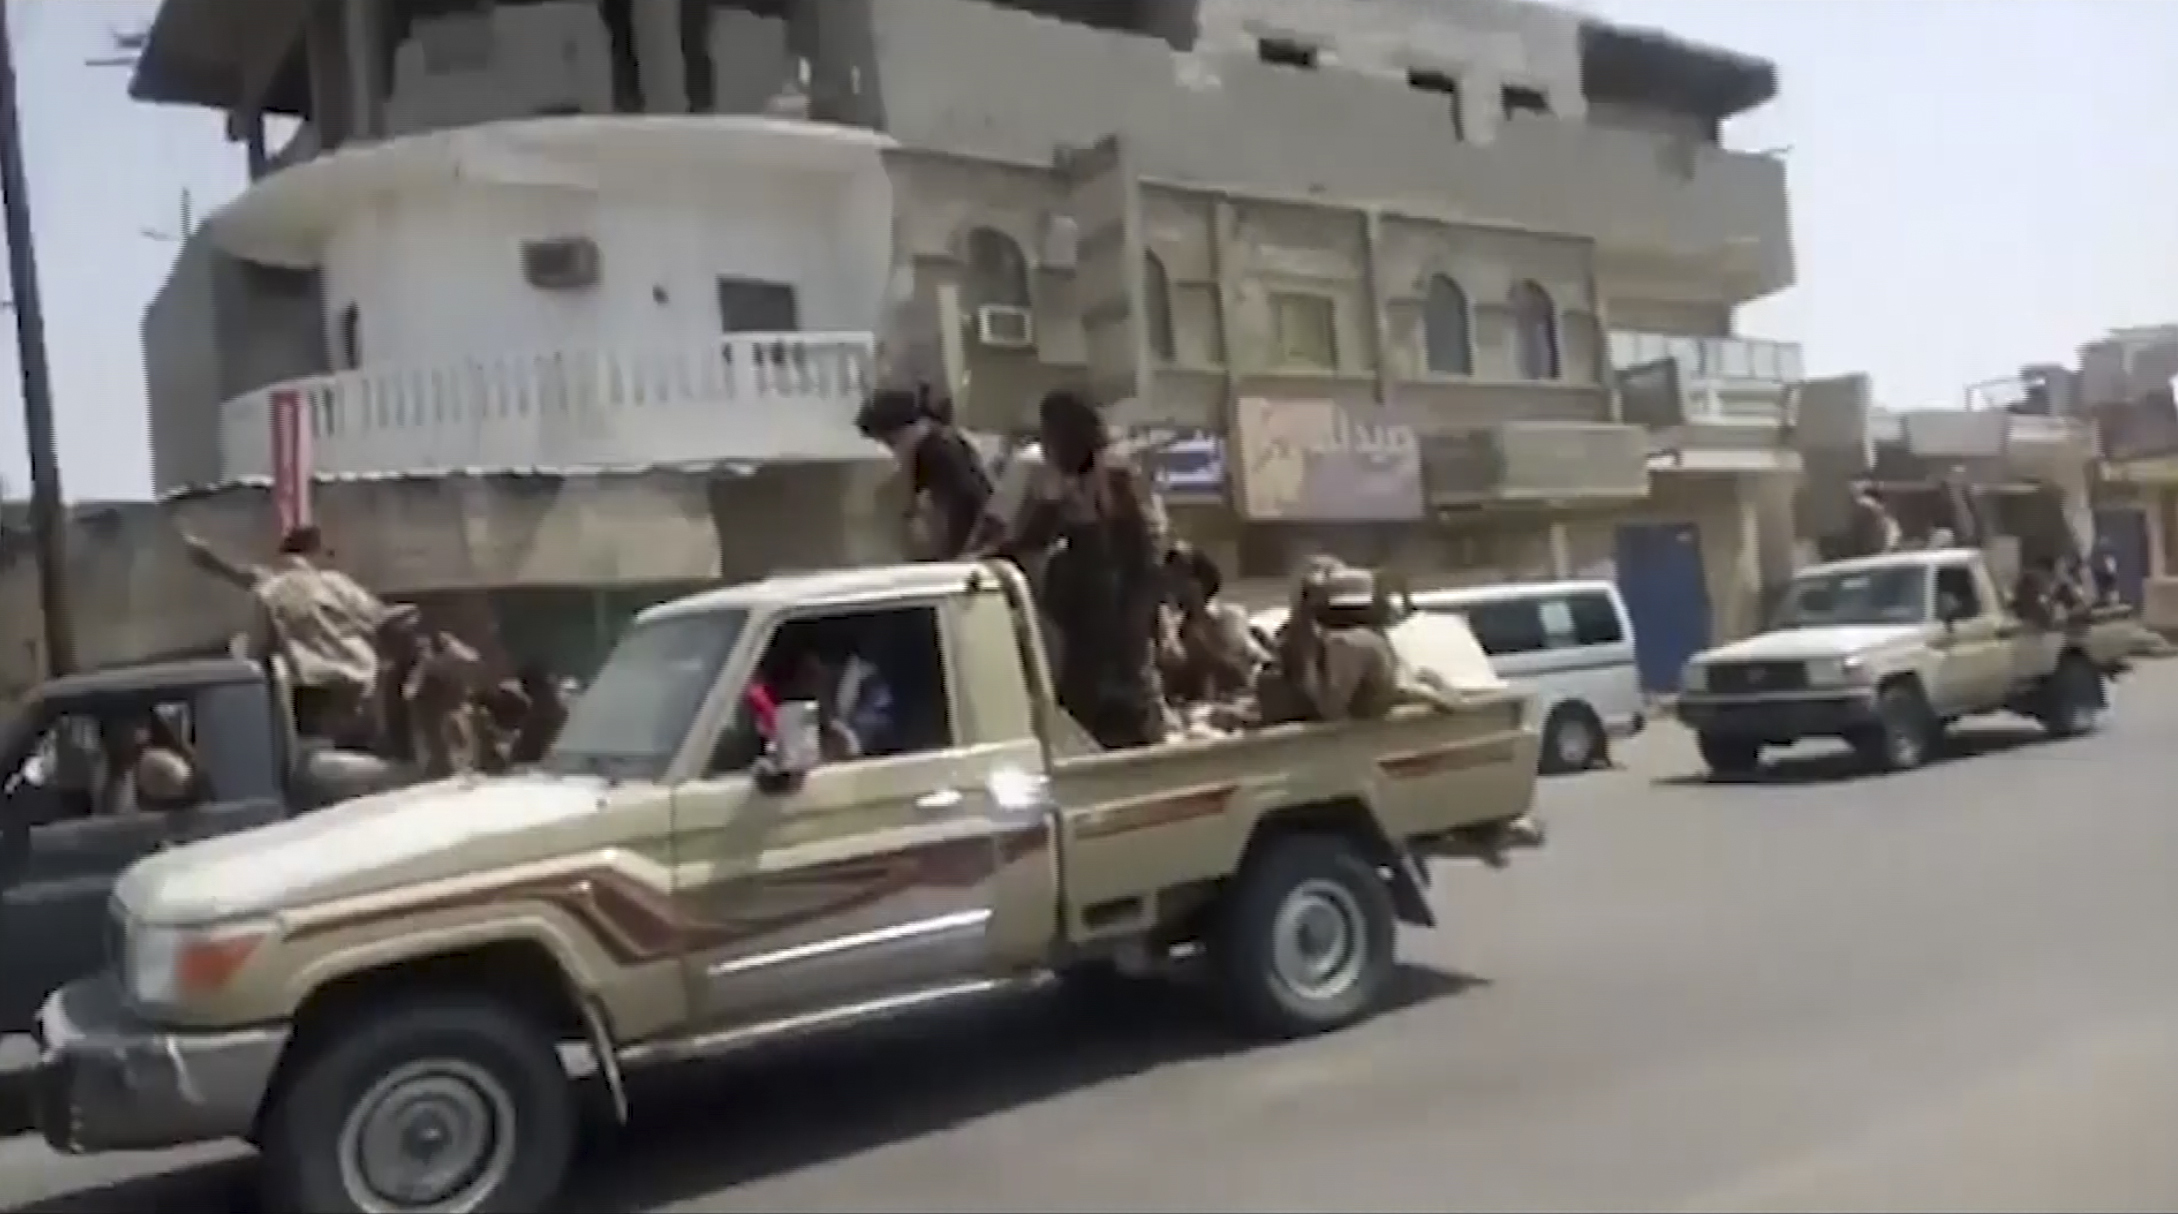 Yemen President urges end of UAE strikes, fears secession